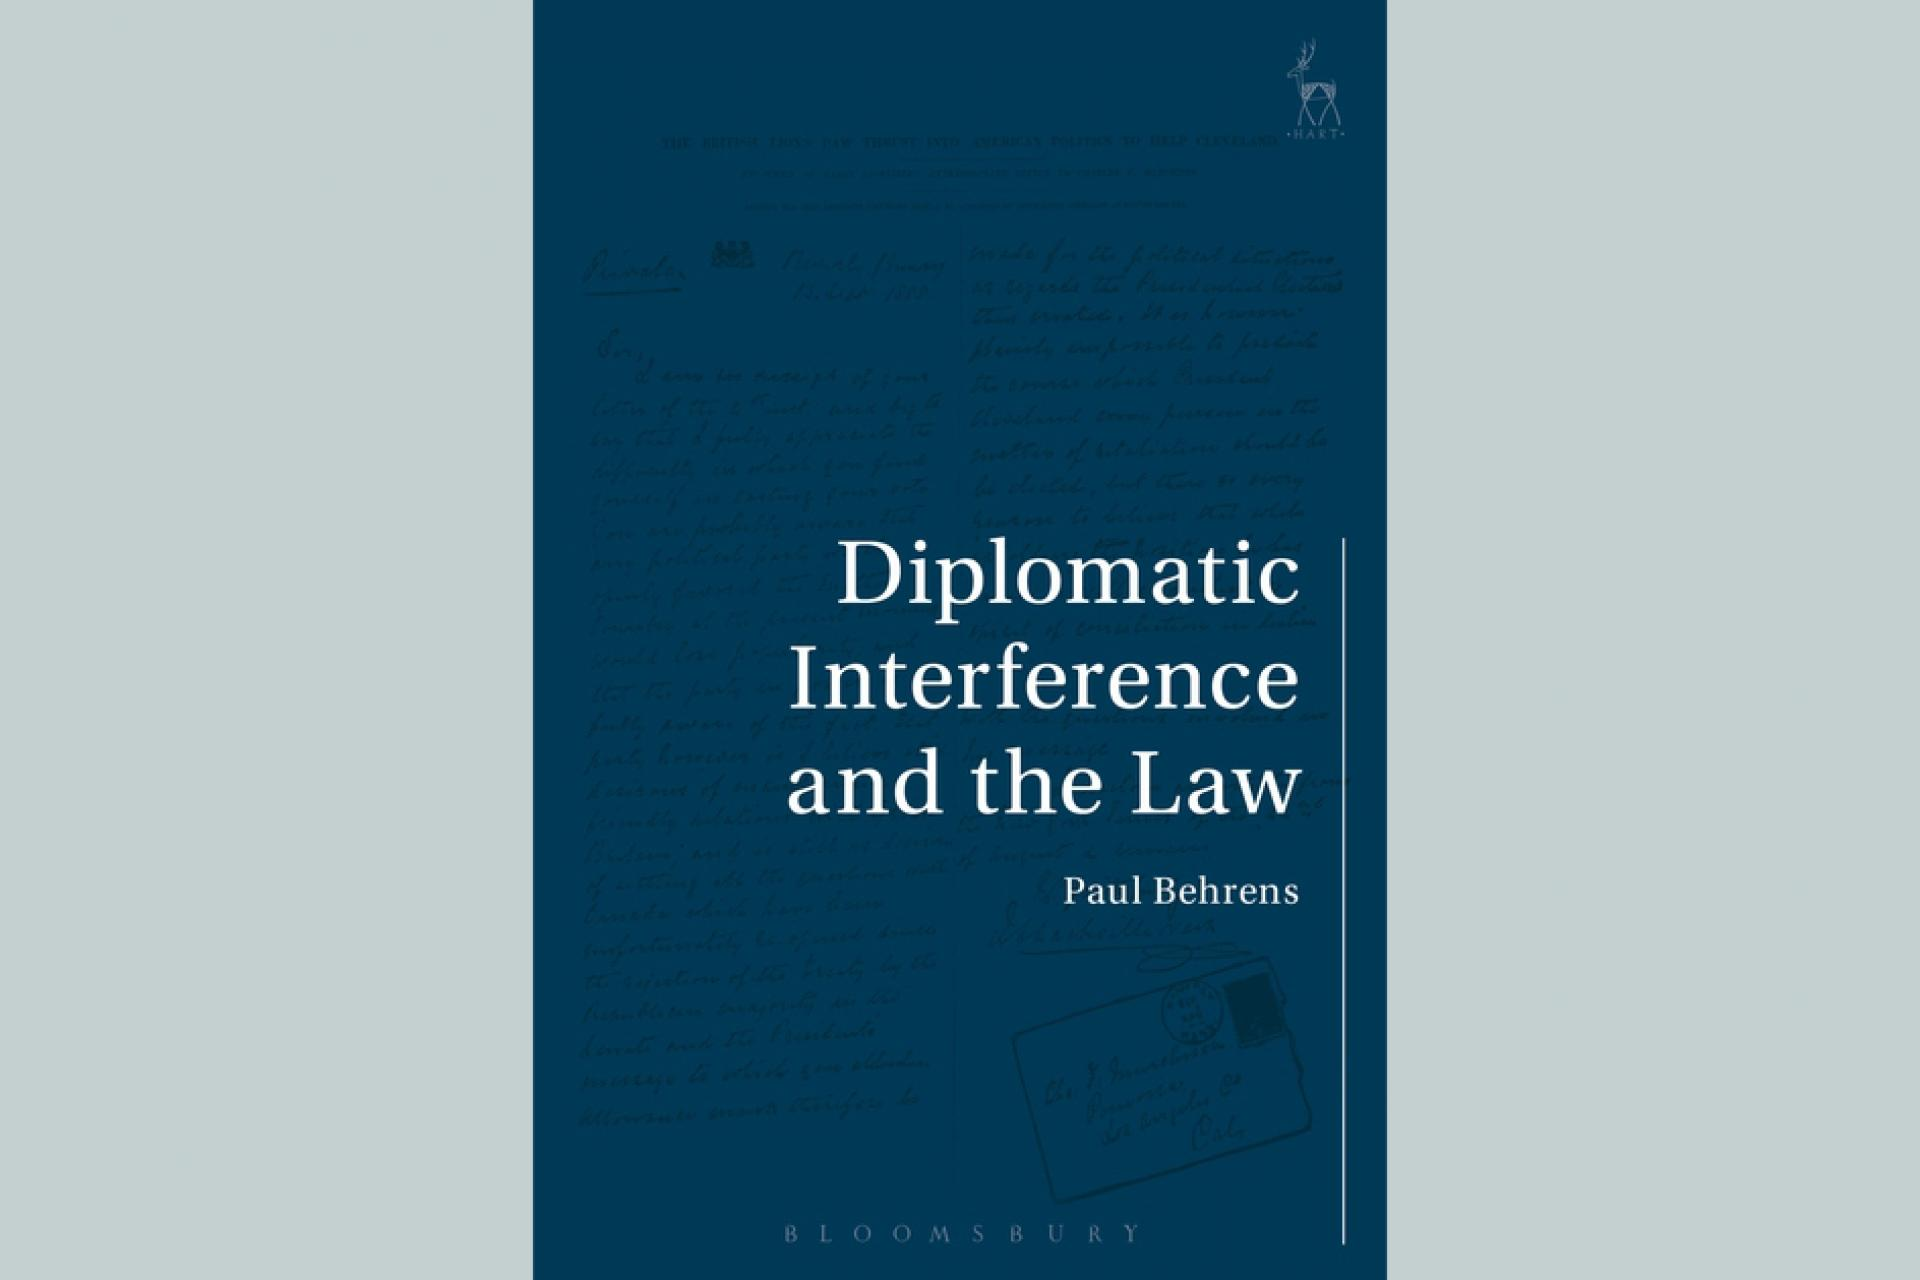 Behrens - Diplomatic Interference and the Law